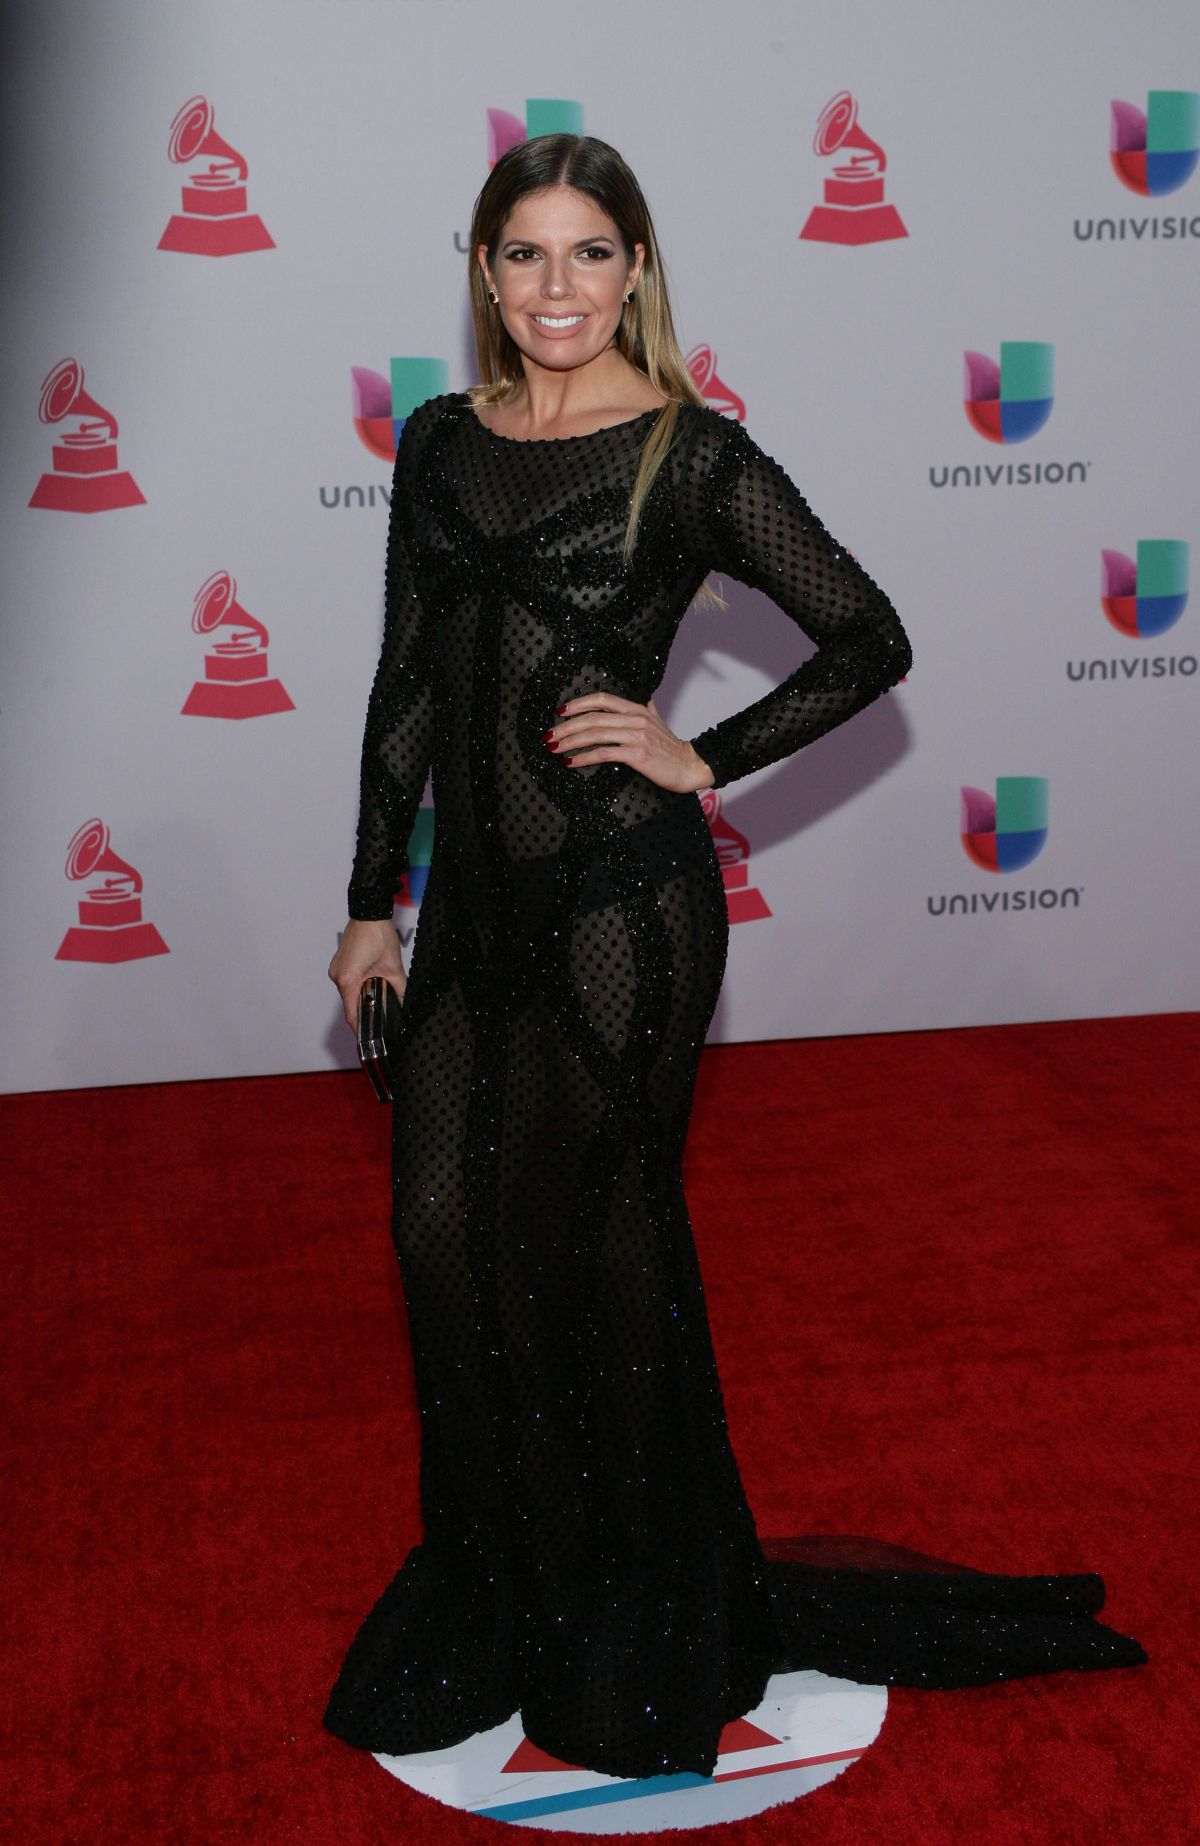 FERNANDA KELLY at 2015 Latin Grammy Awards in Las Vegas 11/18/2015